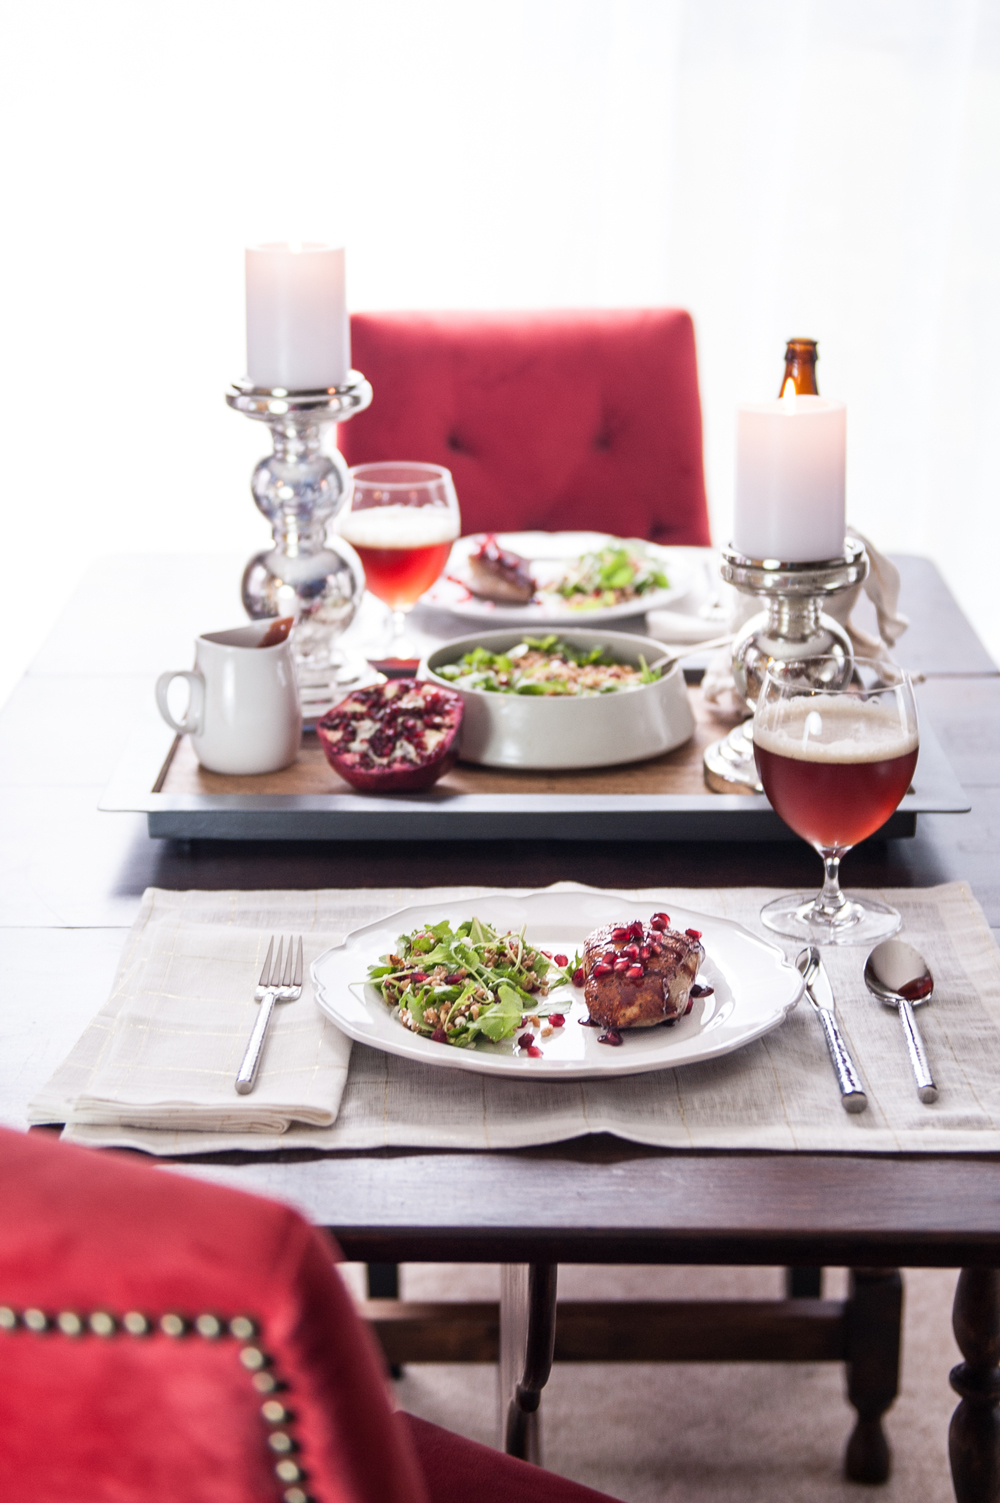 New Year's Eve Dinner Ideas for Two | Crate and Barrel Blog